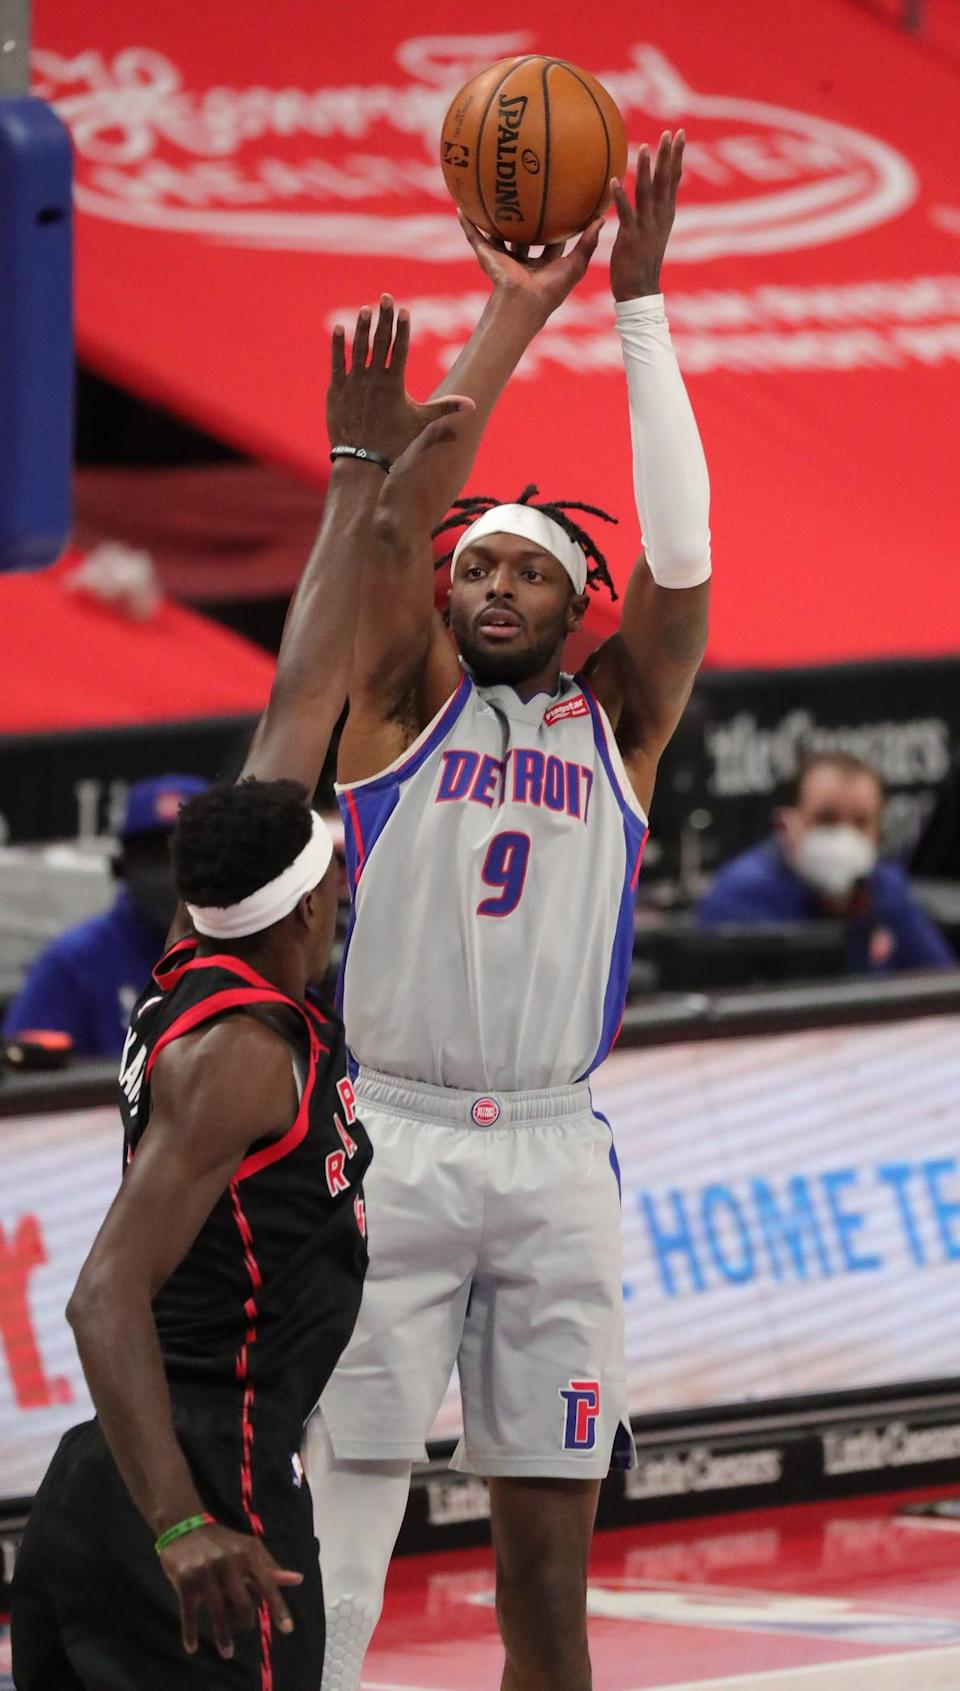 Pistons forward Jerami Grant shoots over Raptors forward Pascal Siakim on Monday, March 29, 2021 at Little Caesars Arena.